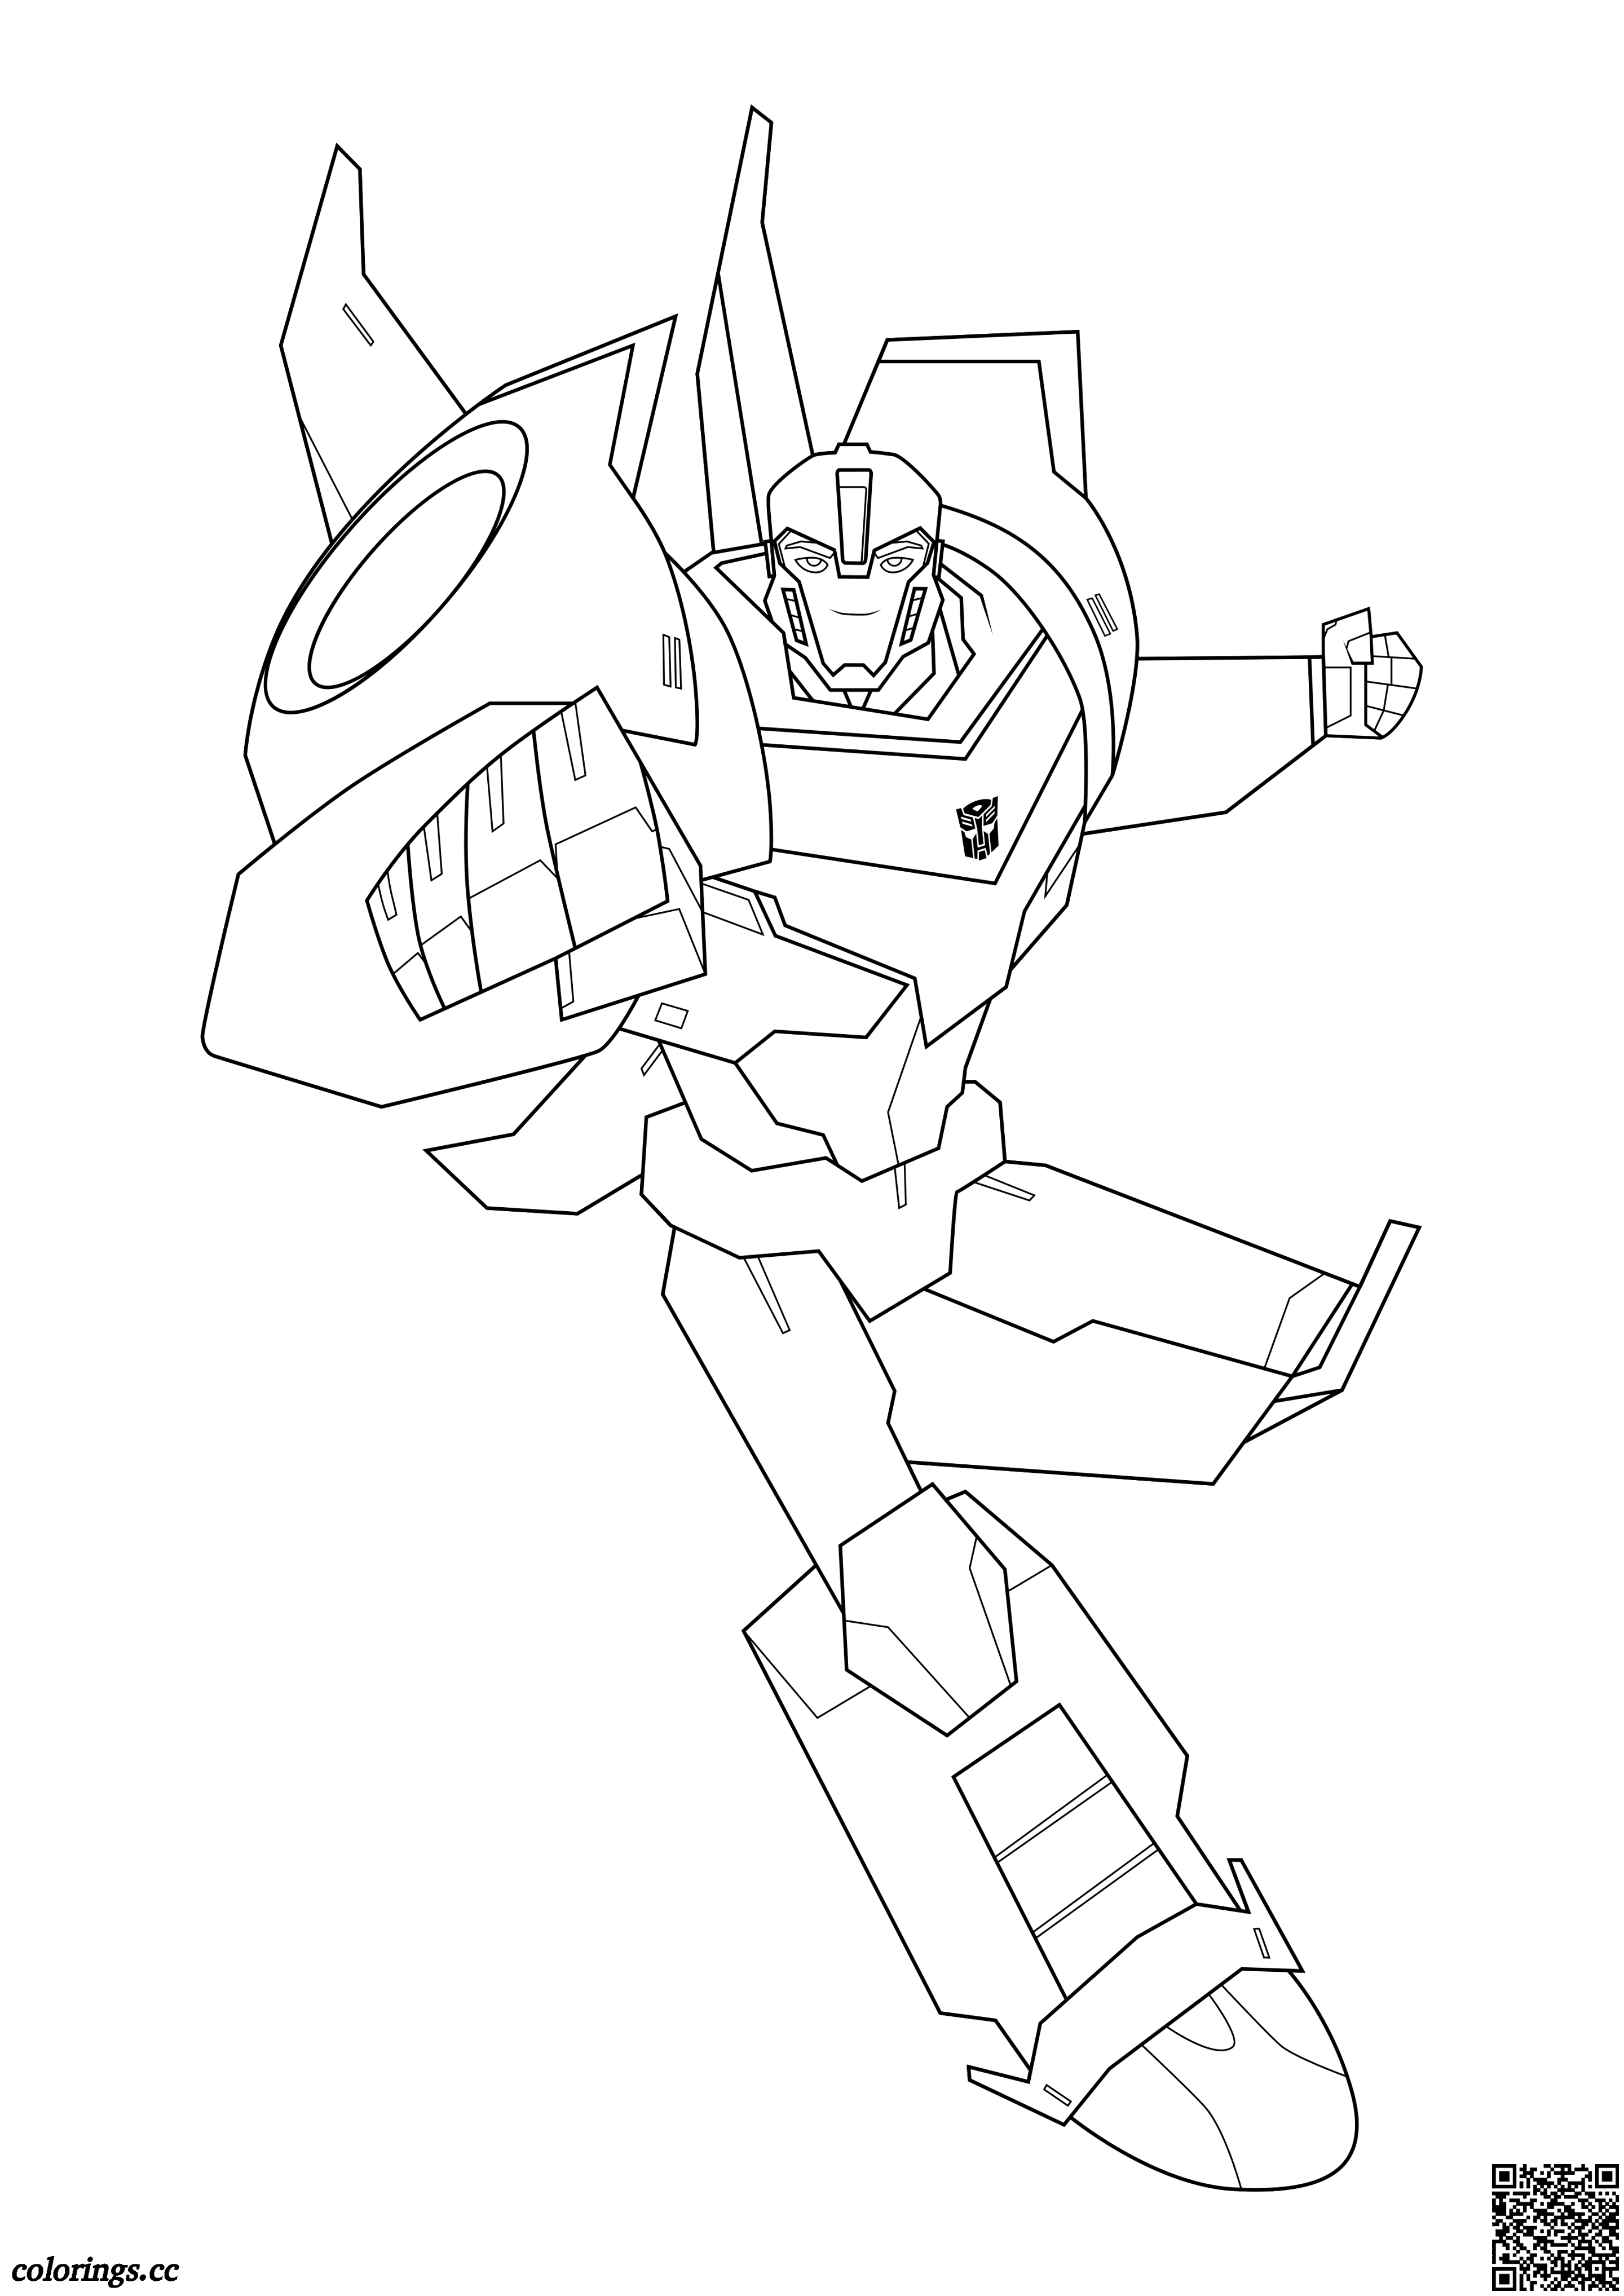 cool bumblebee coloring pages be more creative